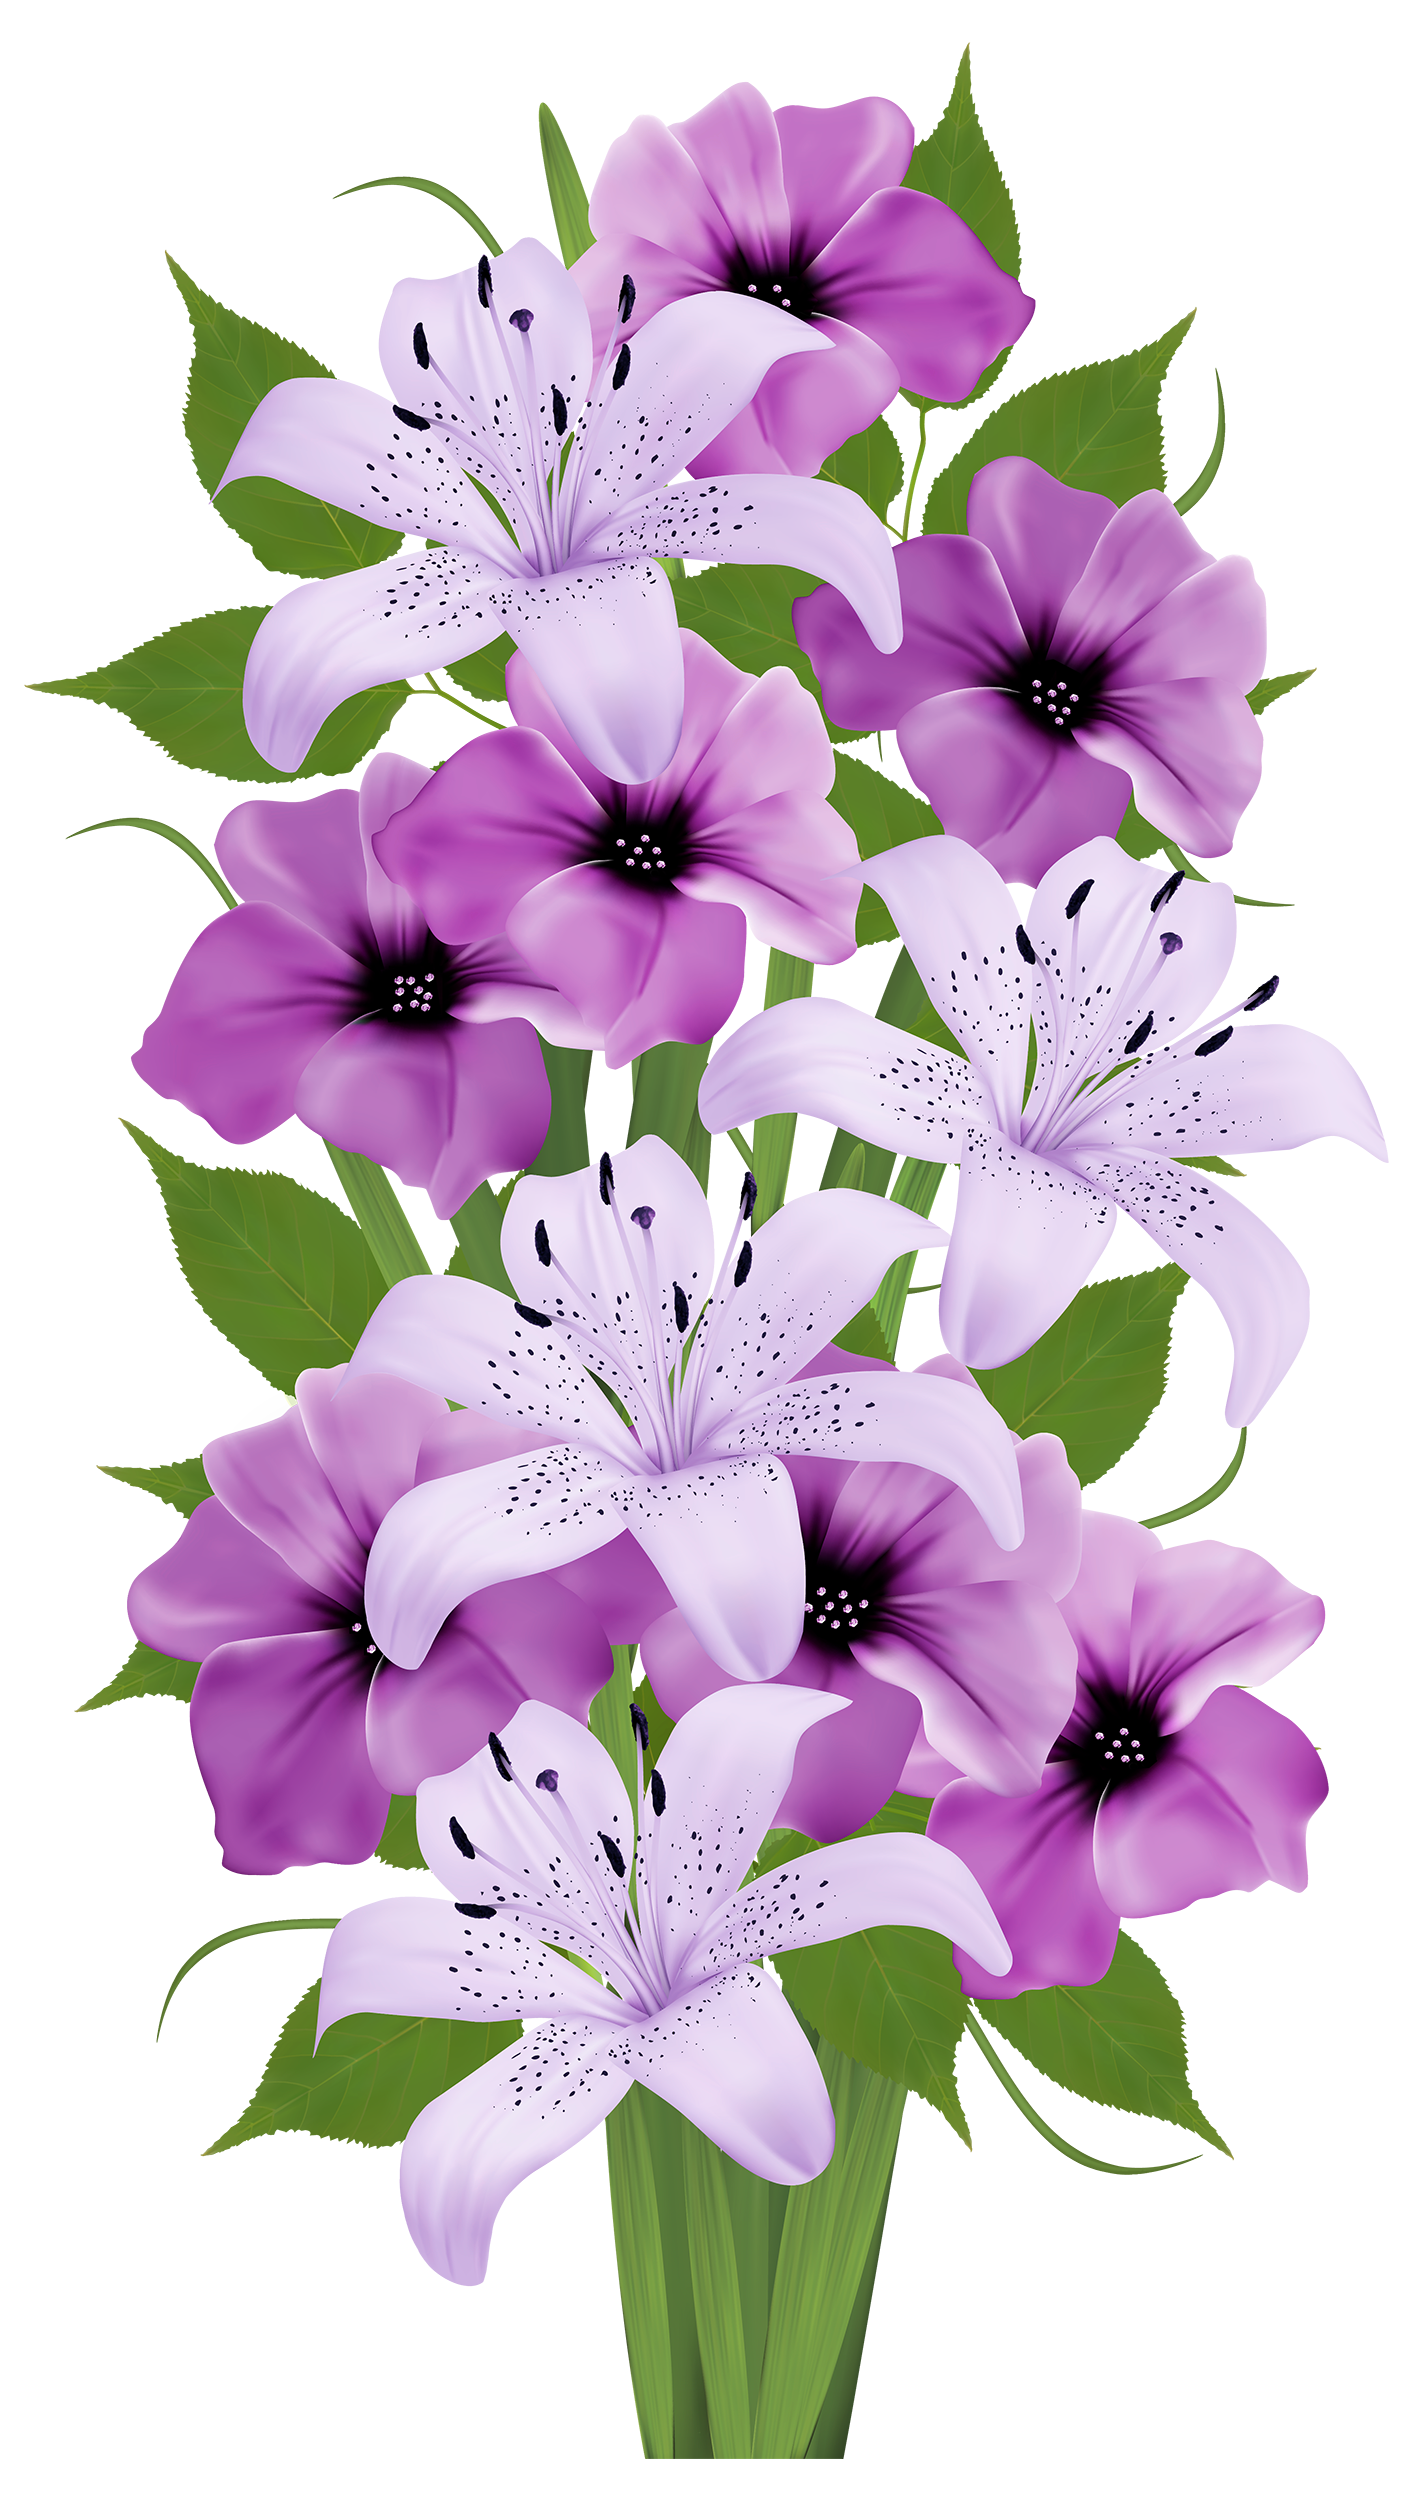 Flower bouquet images clipart svg free download Purple Lilies Bouquet | Clip Art Everyday for Cards, Scrapbooking ... svg free download